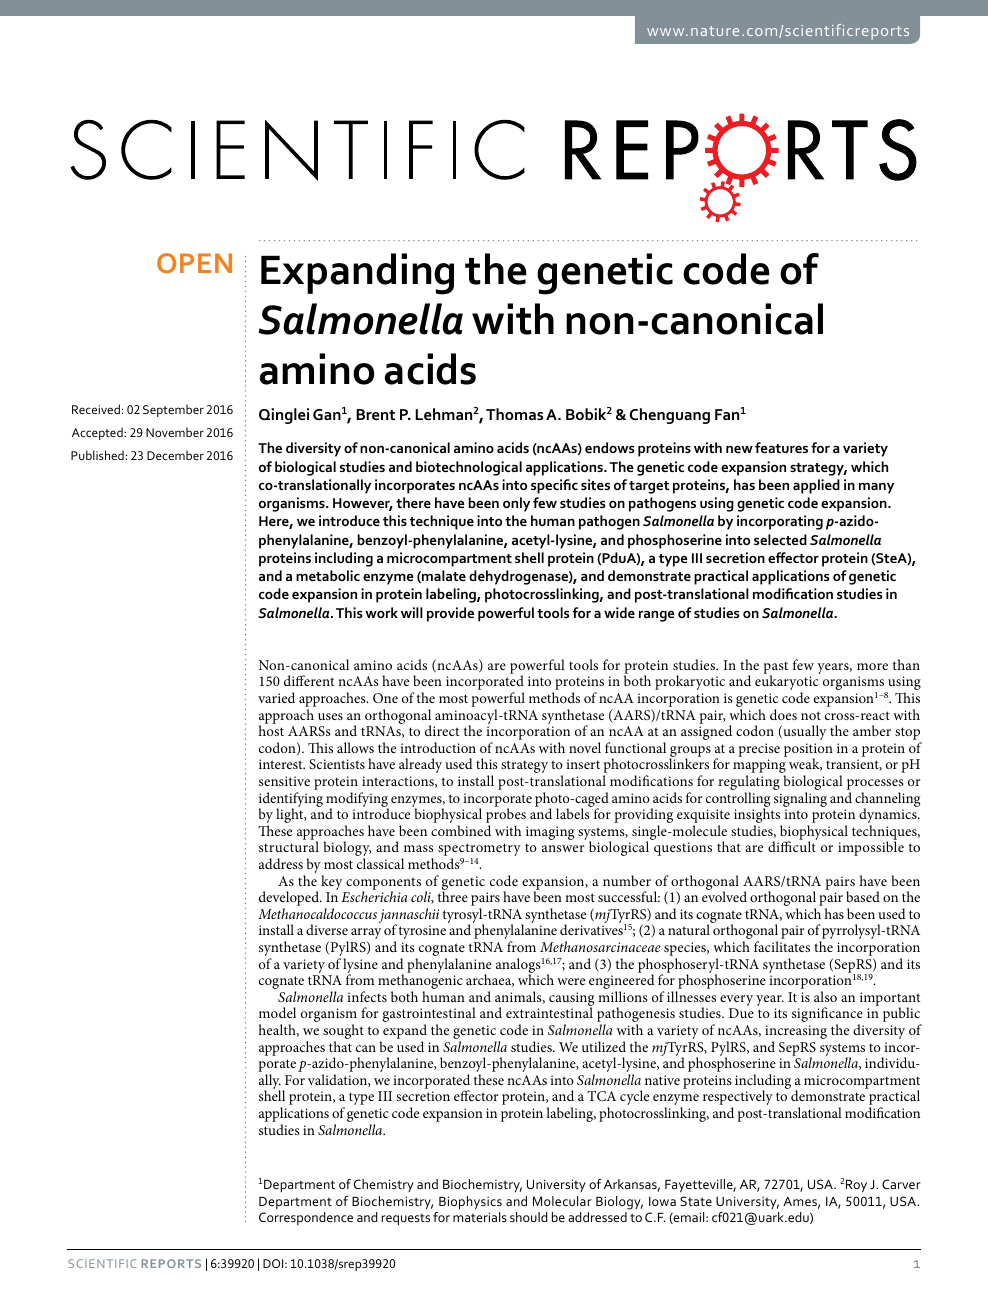 Expanding the genetic code of Salmonella with non-canonical amino